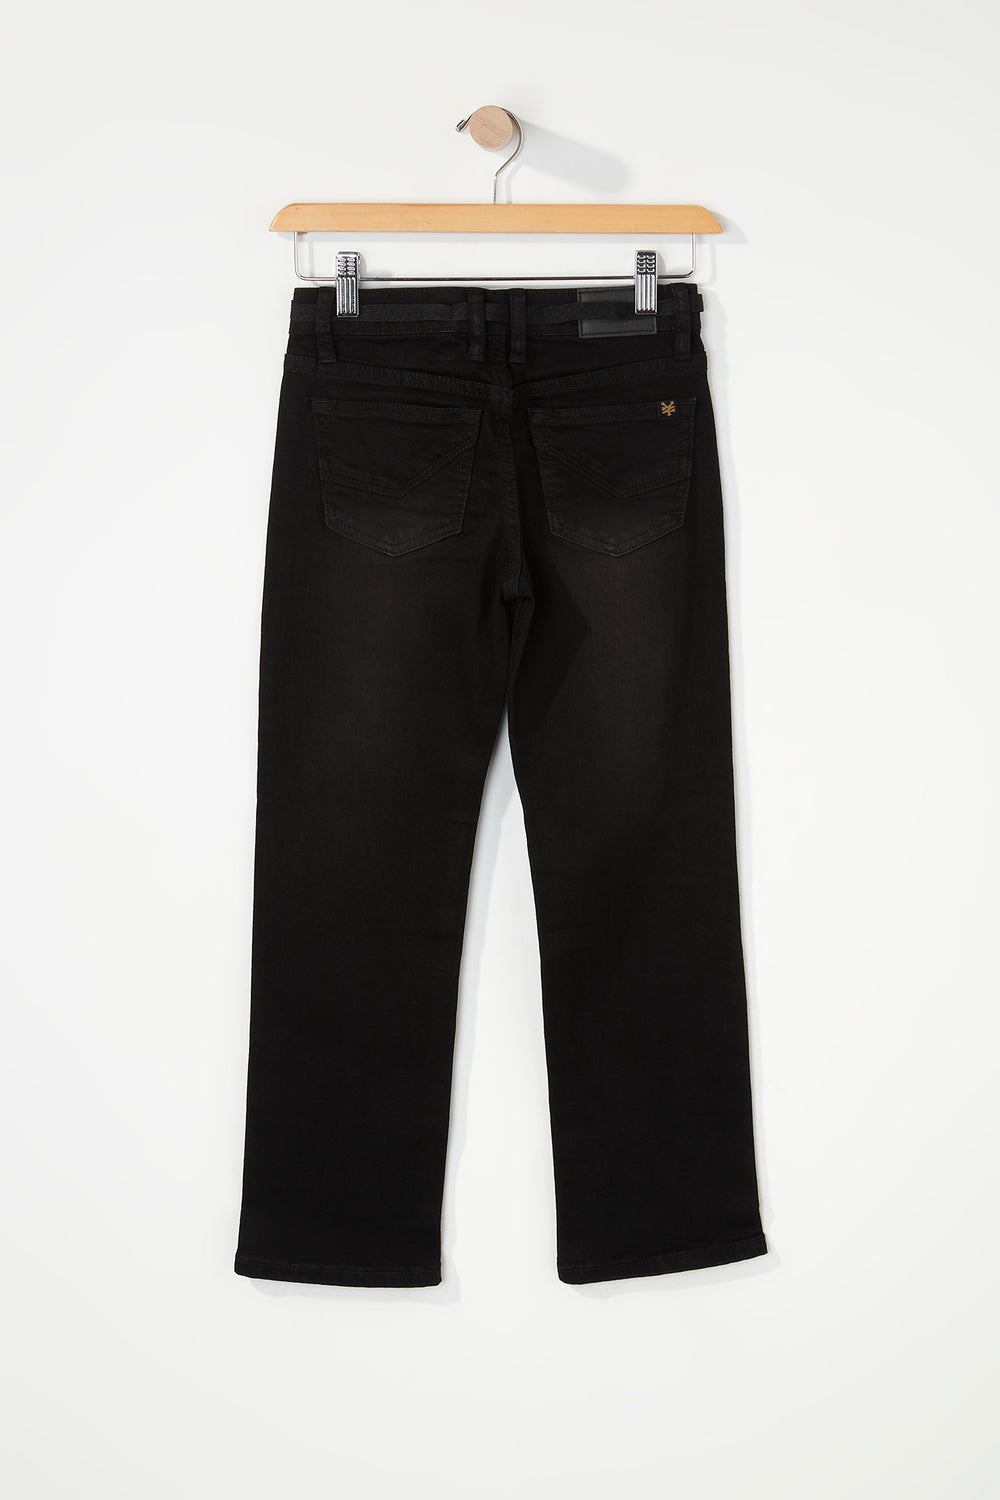 Zoo York Boys Distressed Black Stretch Slim Jeans Solid Black